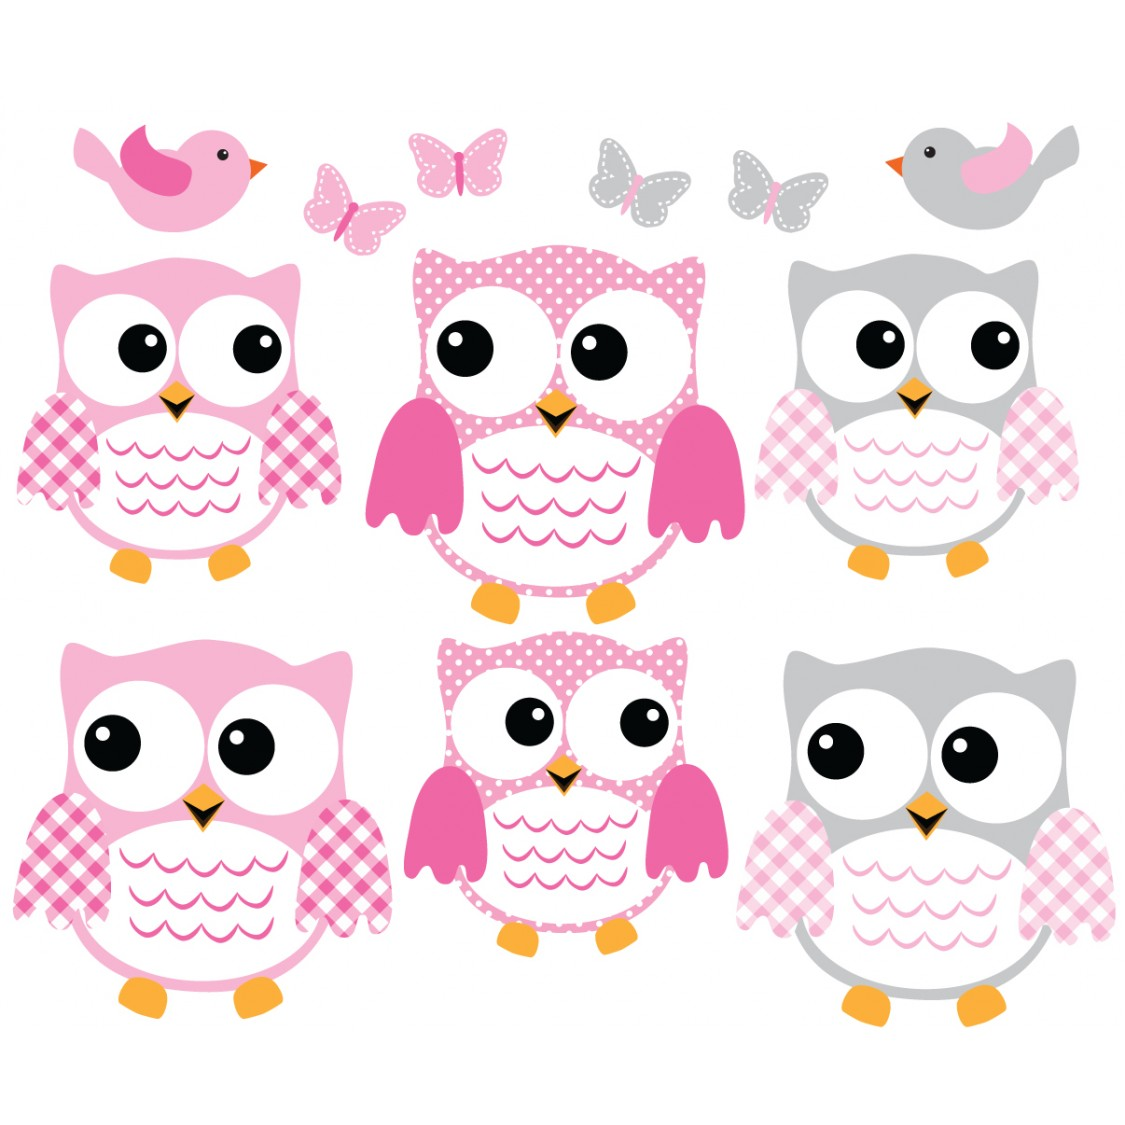 pink and gray owl wall decal with bird wall art for kids rooms - Owl Pictures For Kids